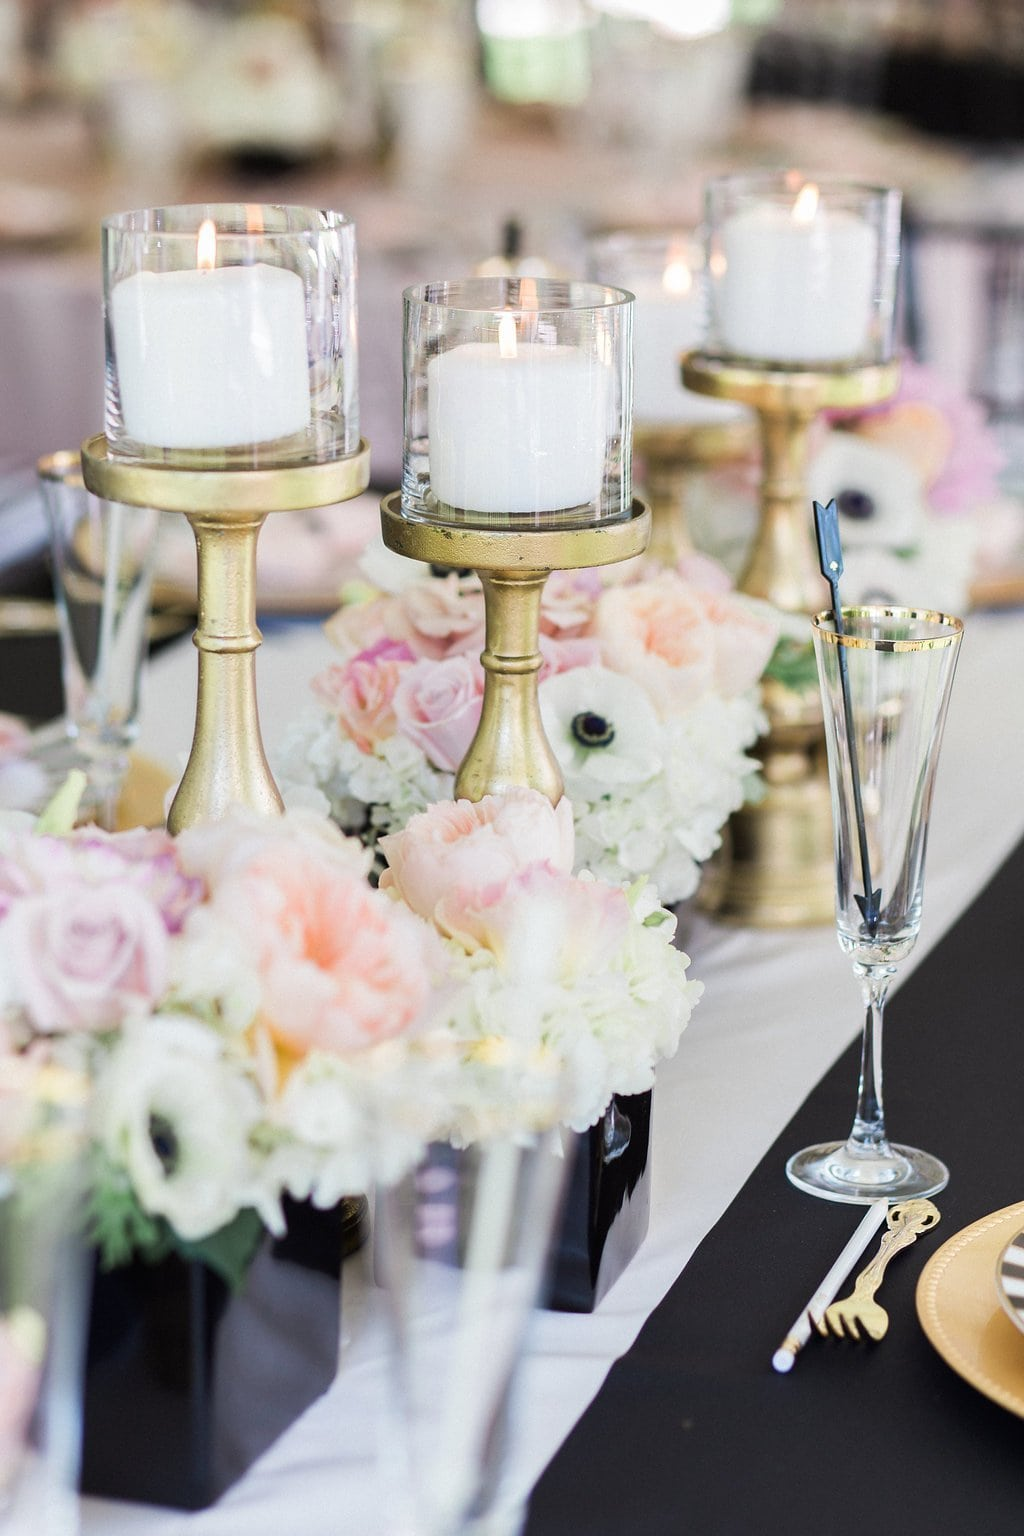 gold candle holders on black and white table cloth with pink and white flowers - Black & White Kate Spade Inspired Bridal Shower